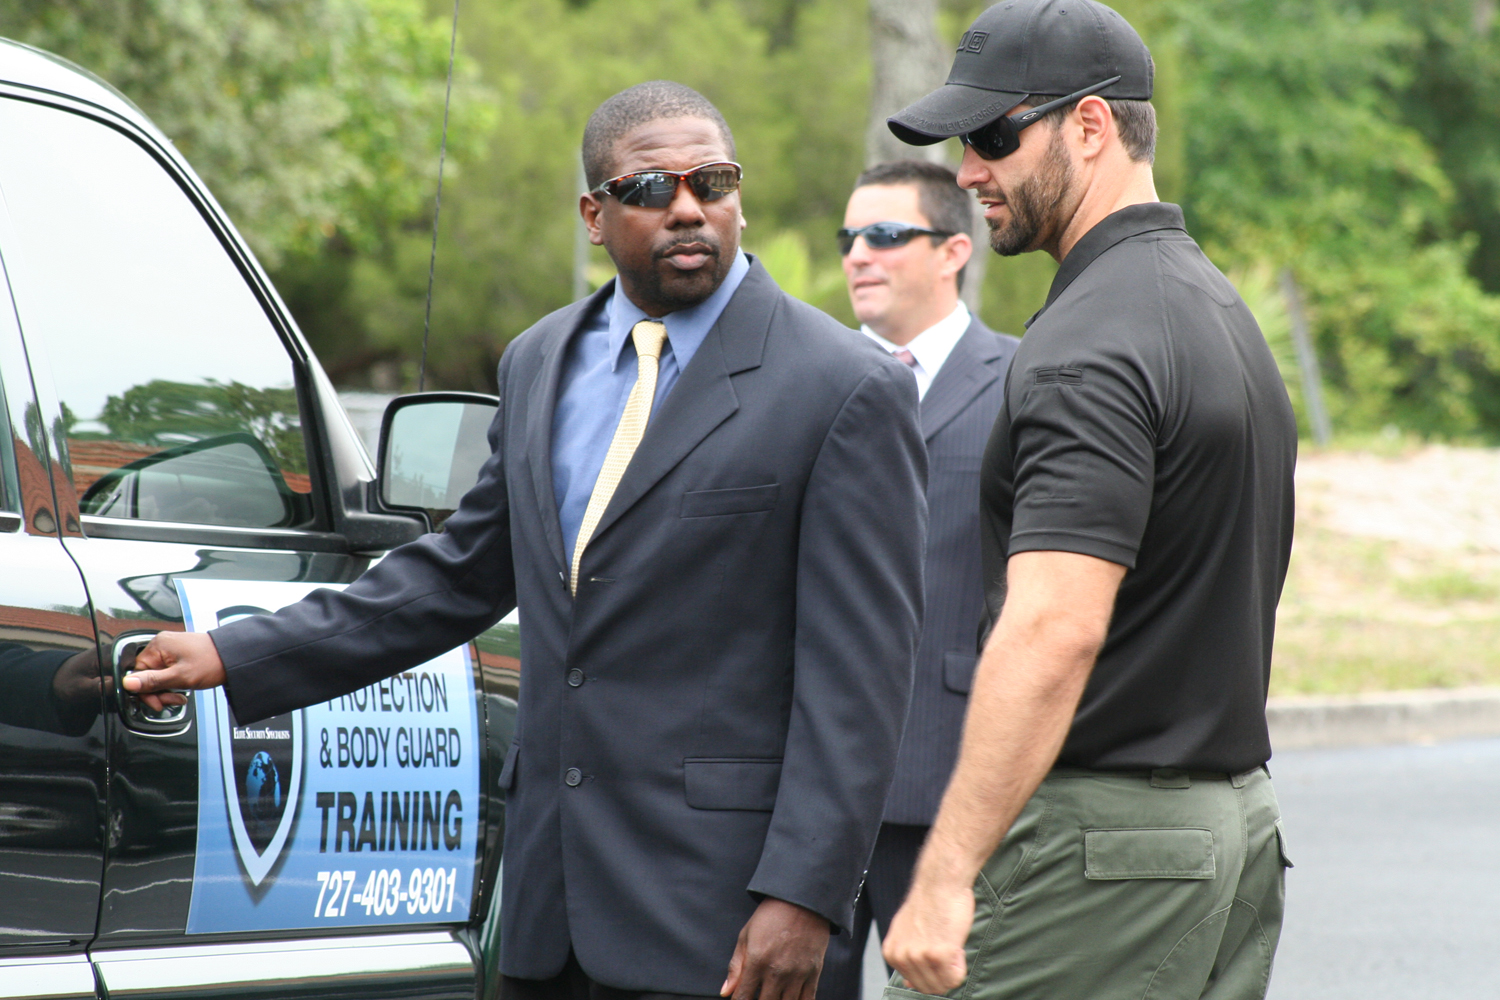 Executive Protection Training In Tampa Florida S Only Gi